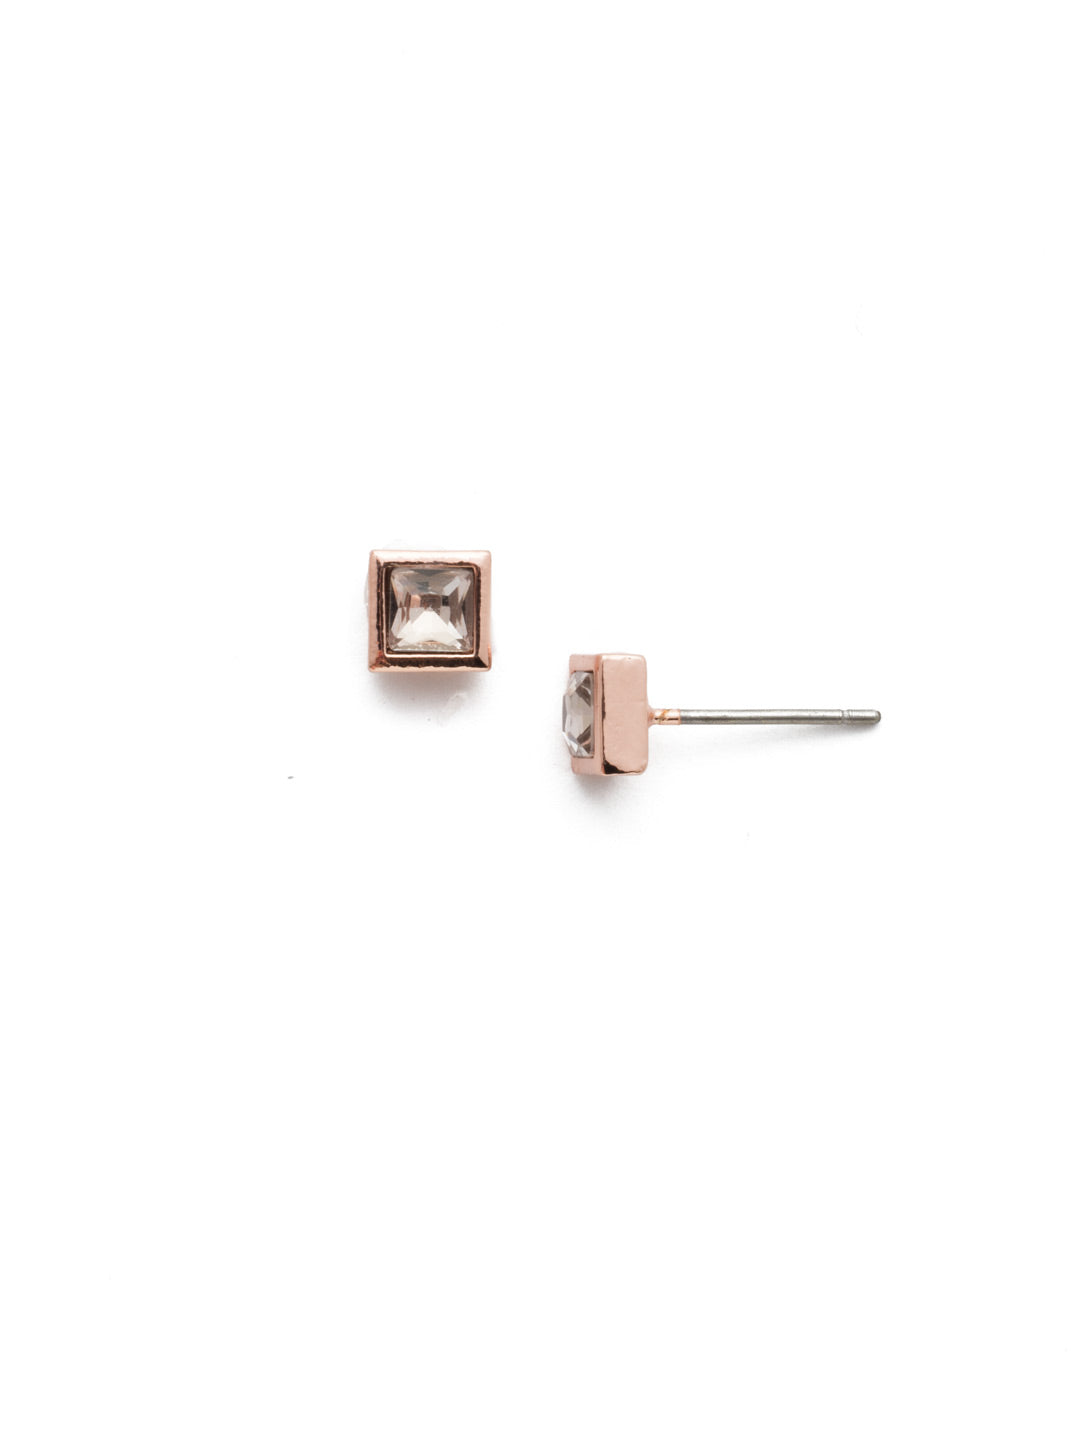 Square Stuff Stud Earrings - ECM53RGLVP